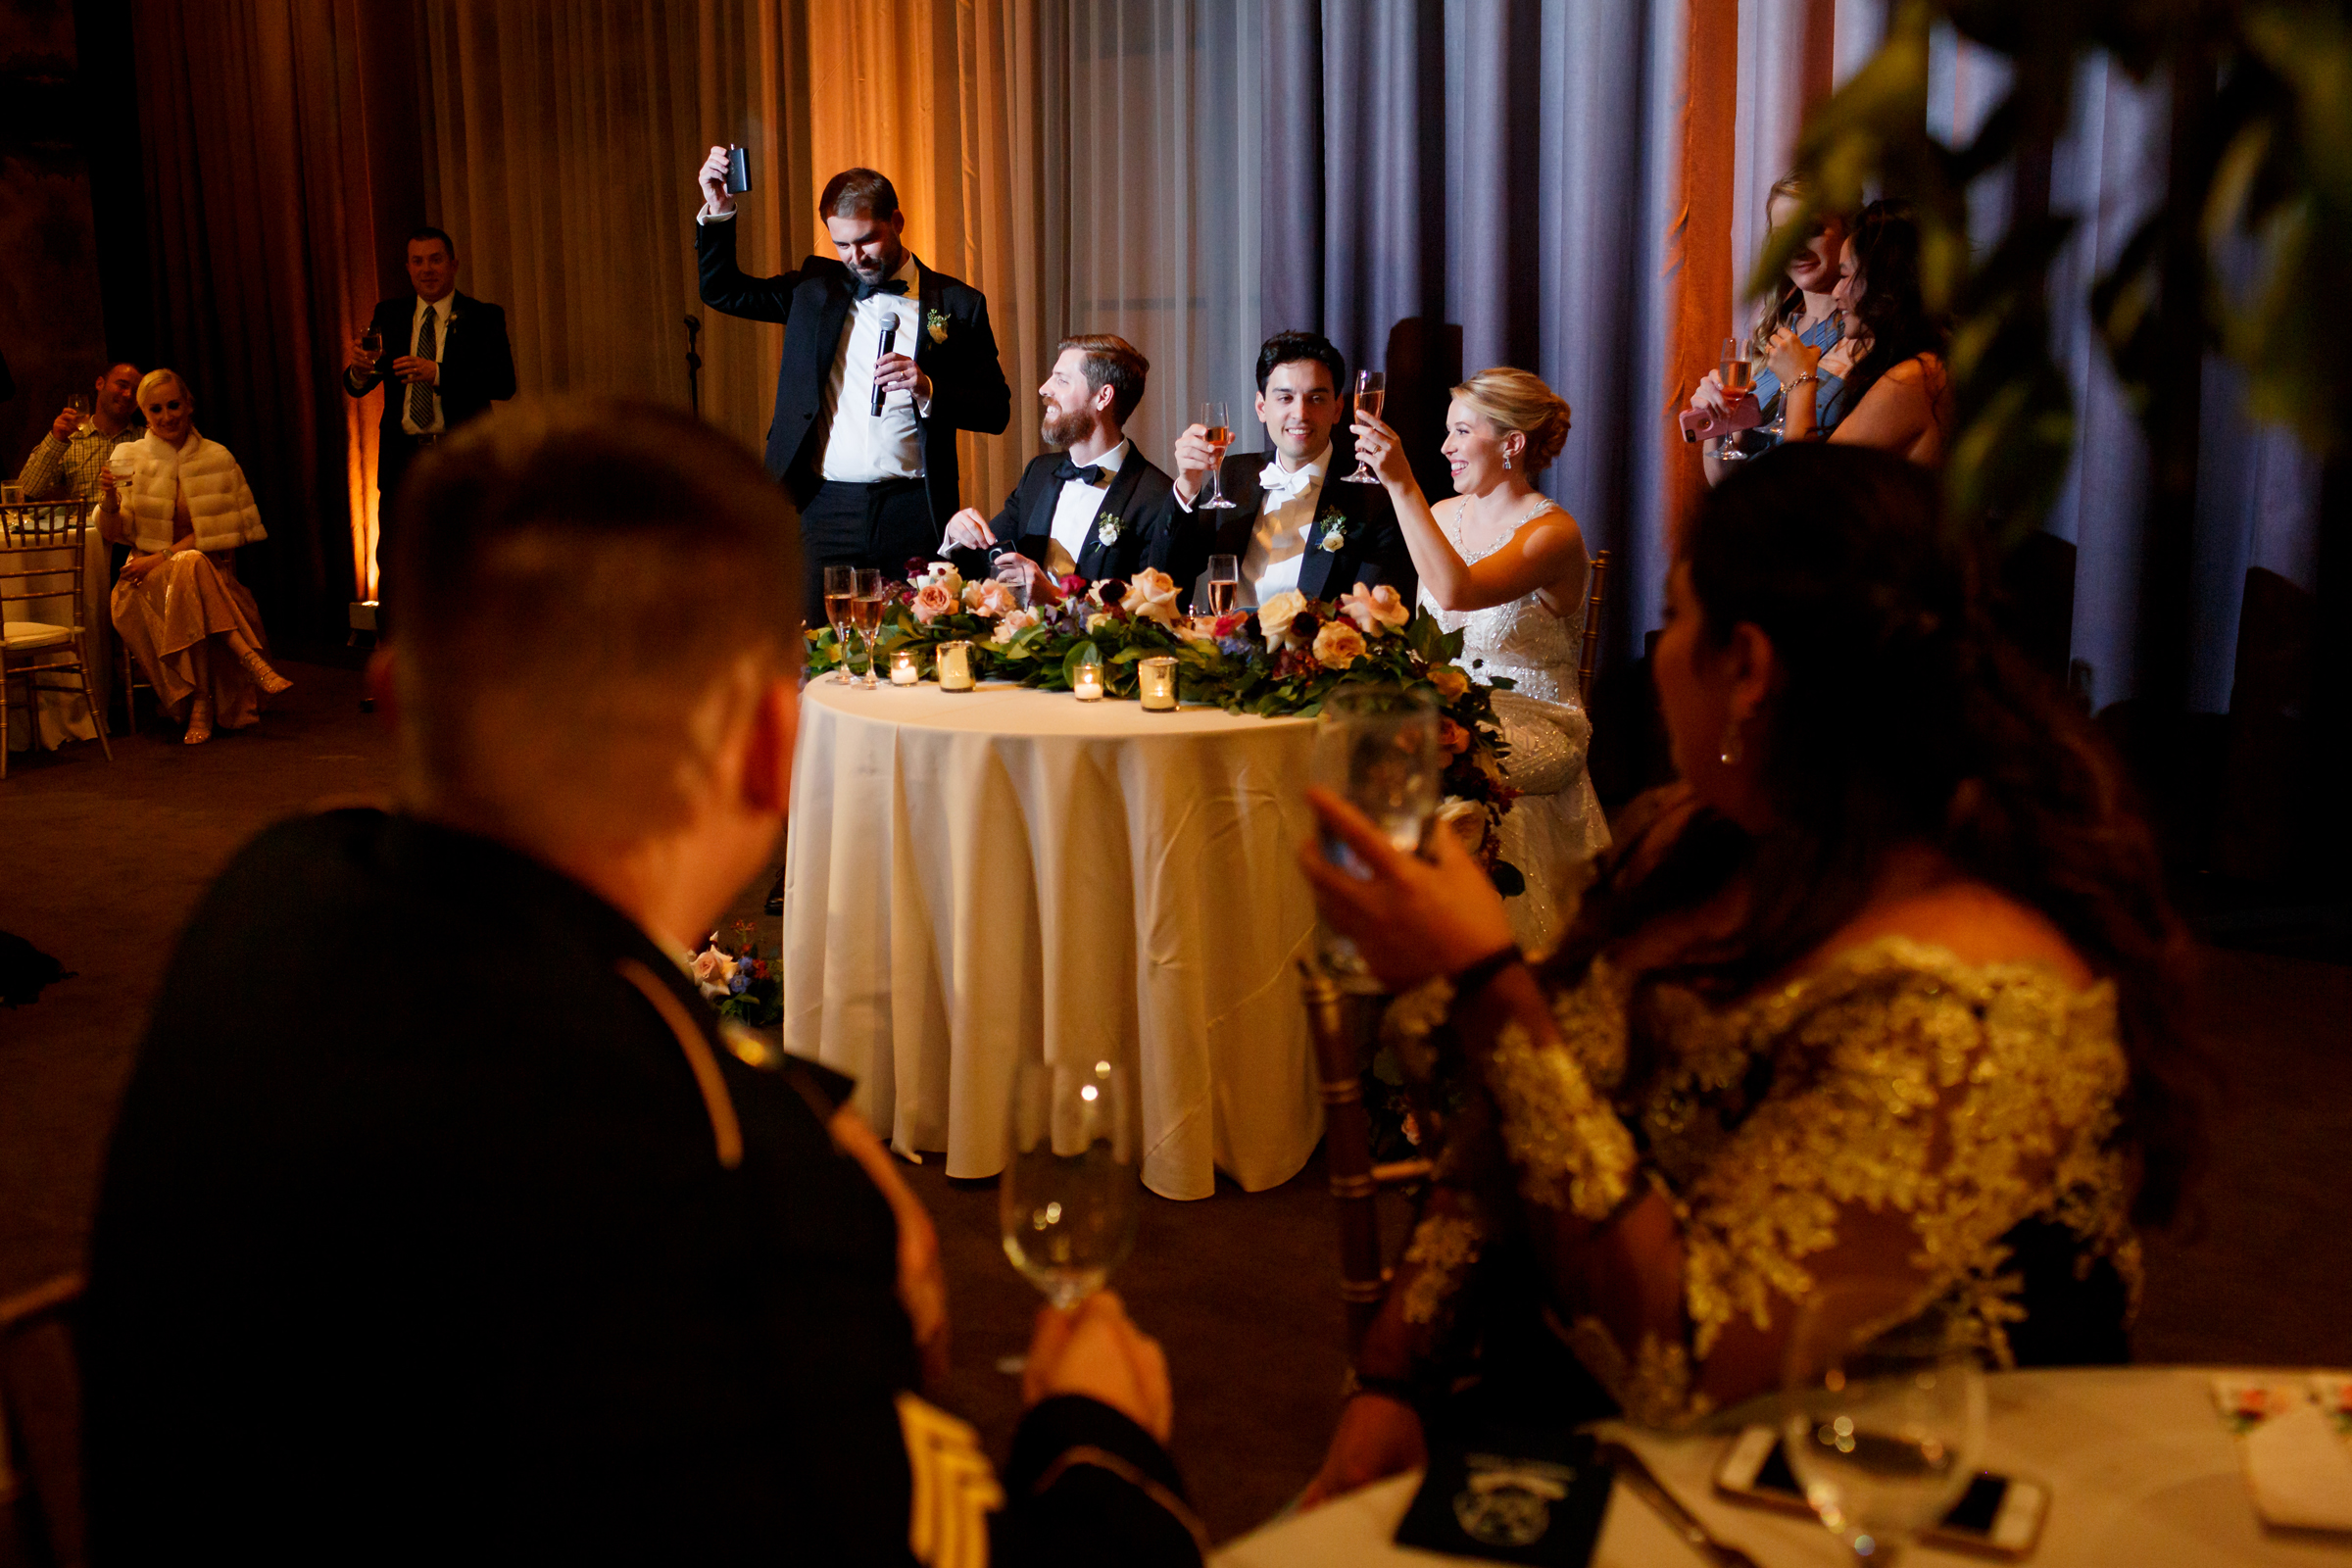 Raising their glasses for a toast - photo by Jenny DeMarco Photography